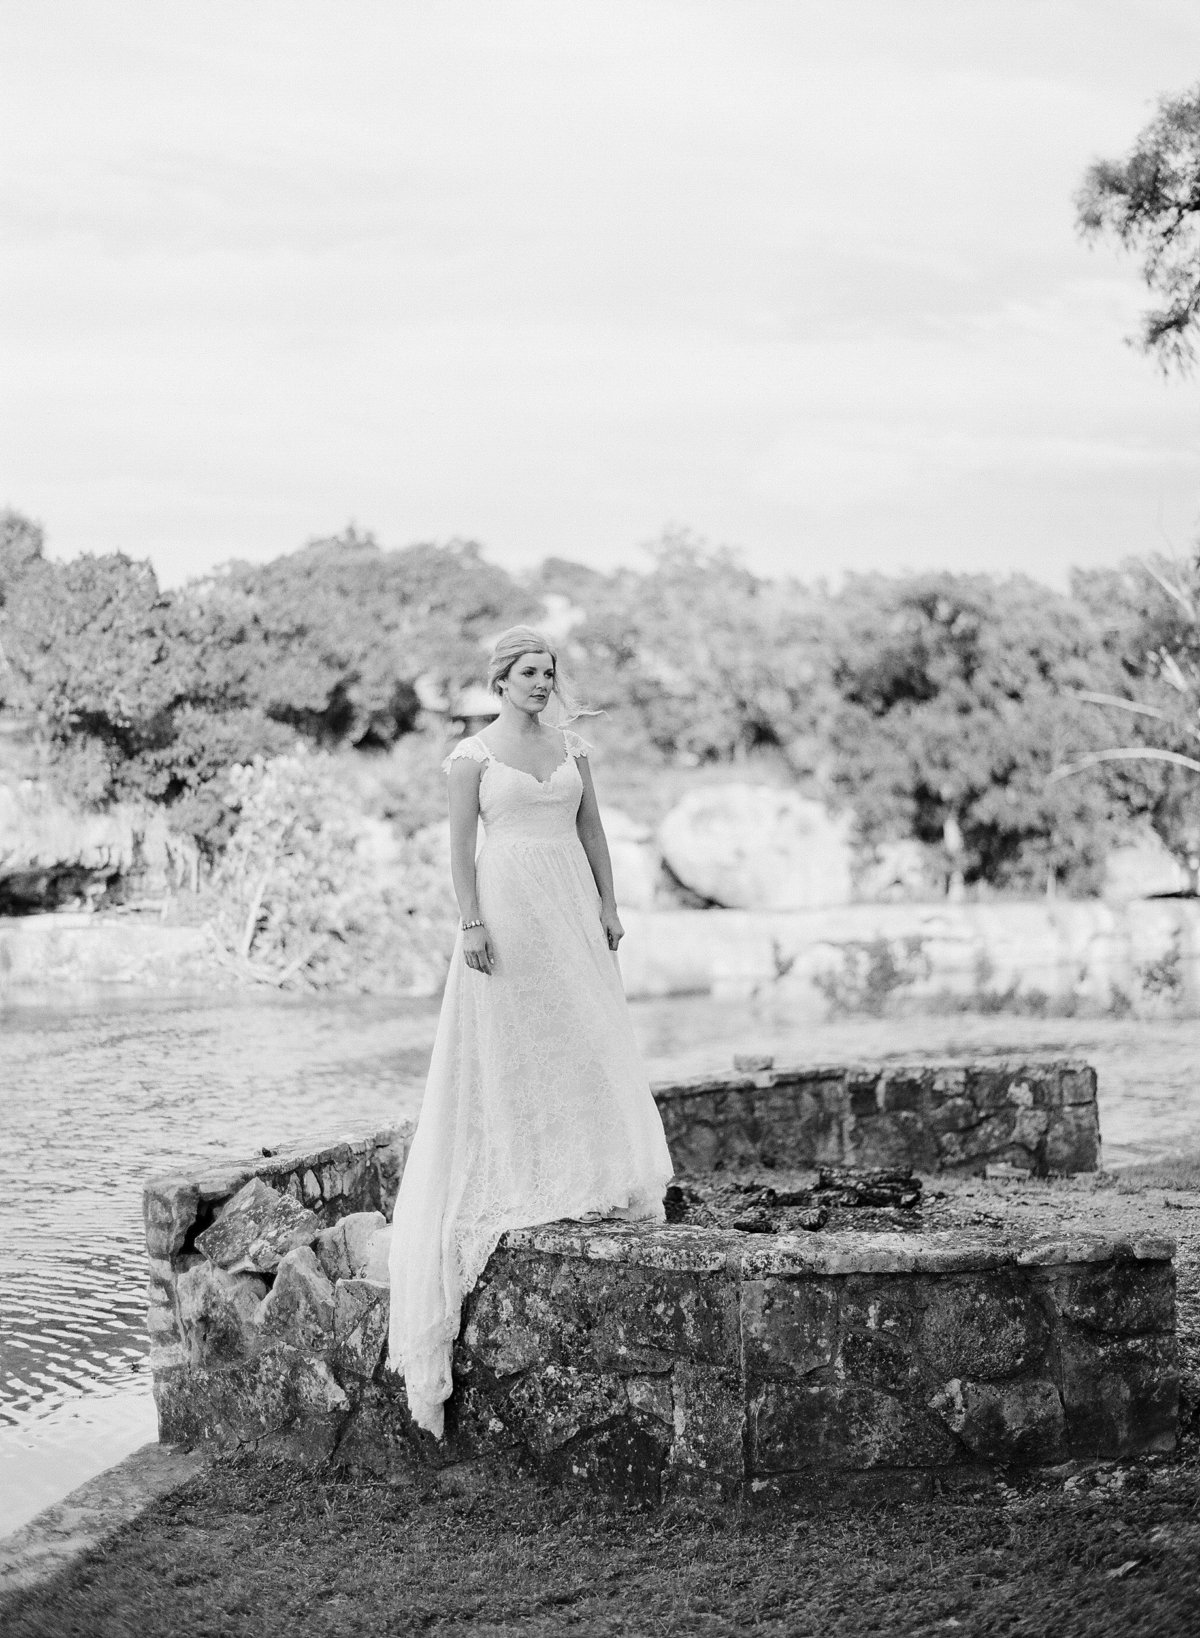 GRANT CANDICE WED 2016-0428